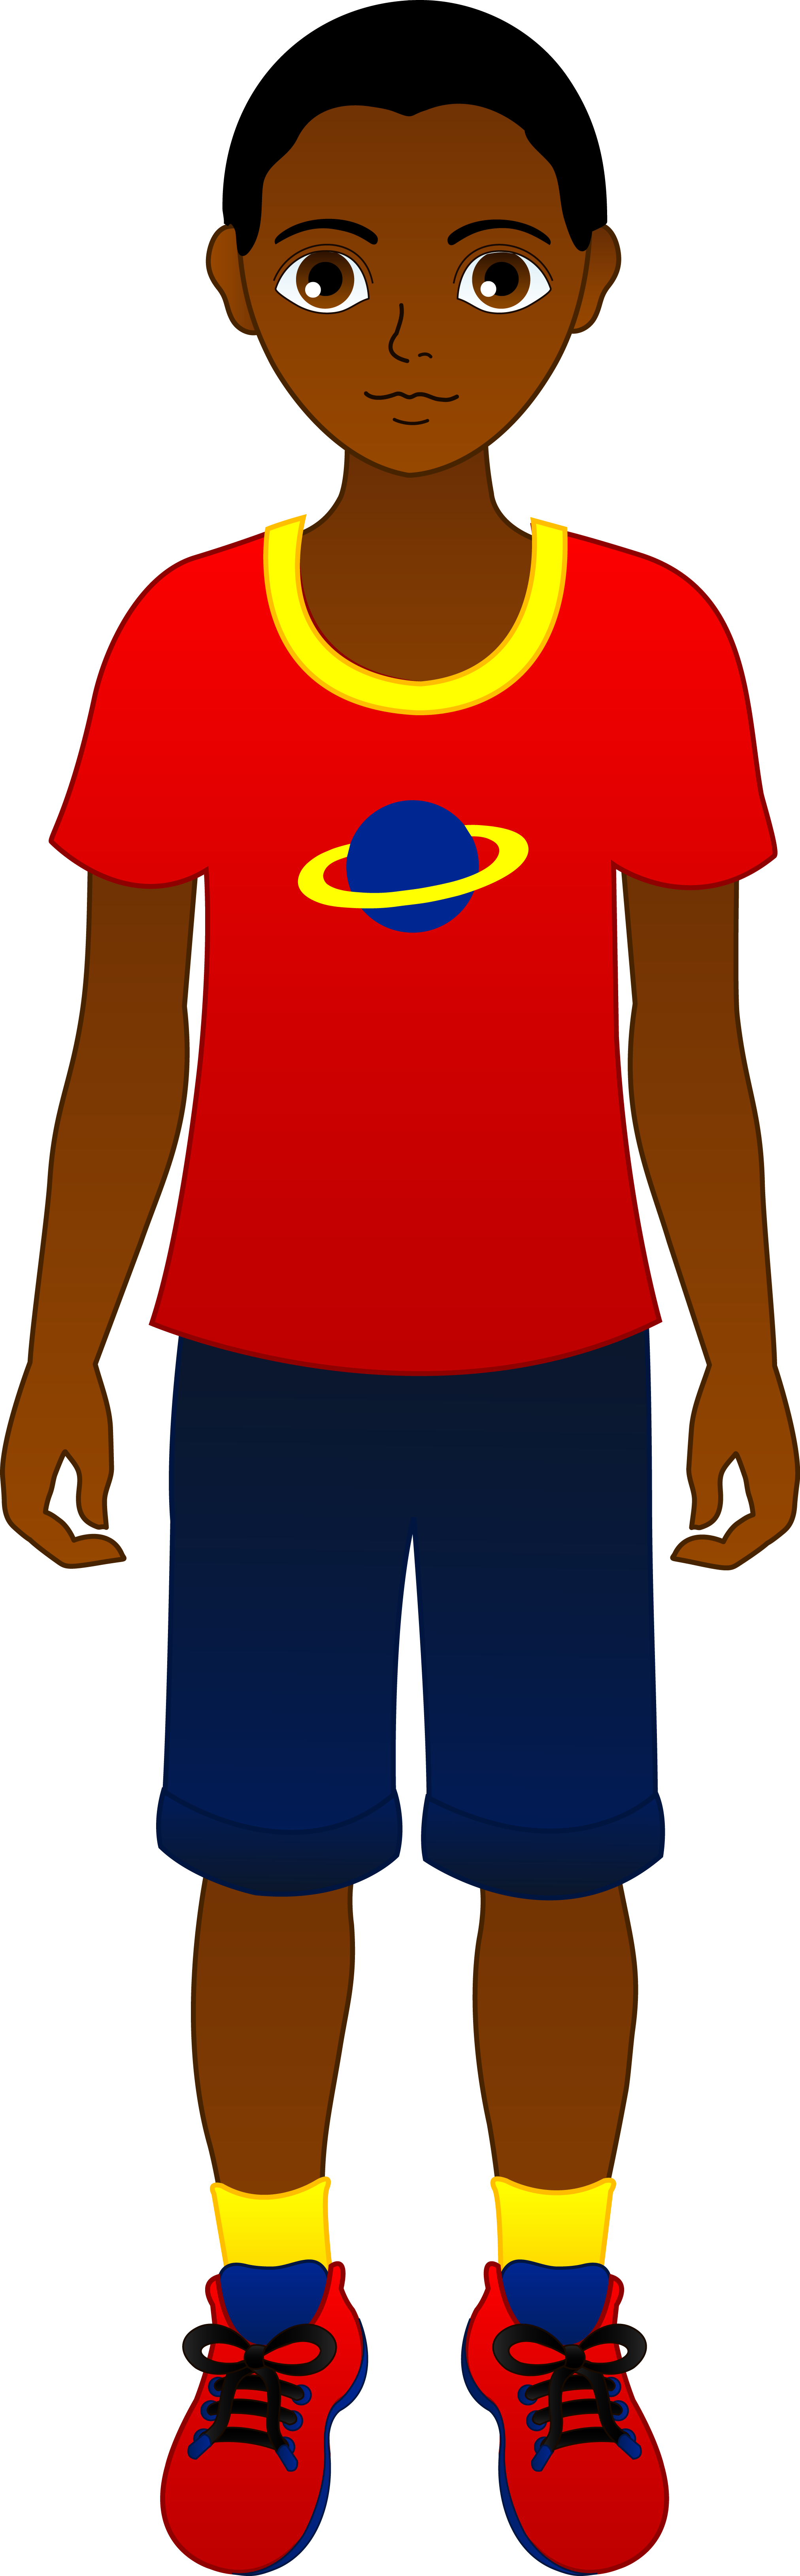 Clipart african american boy svg freeuse stock Free Black Boy Picture, Download Free Clip Art, Free Clip Art on ... svg freeuse stock